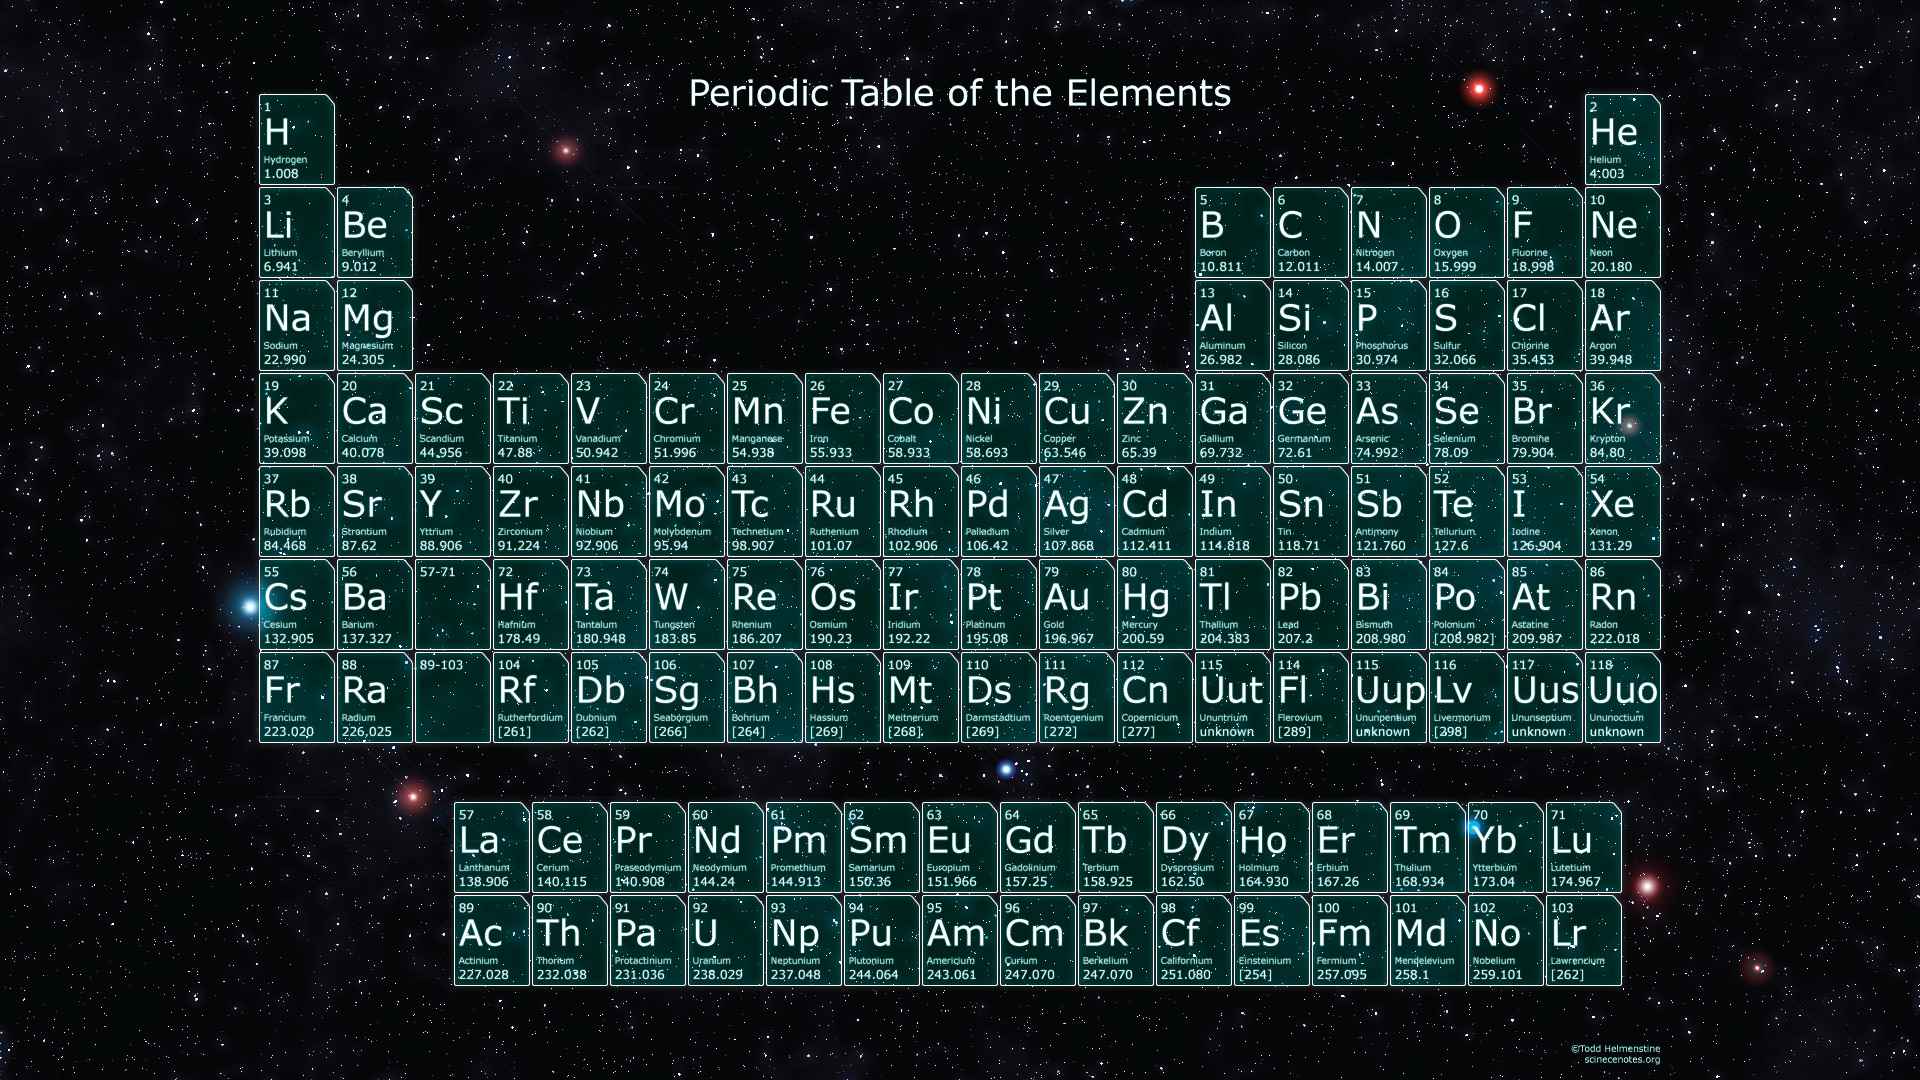 Hd periodic table wallpaper 70 images 1920x1080 periodic table of elements wallpaper cool periodic table wallpaper troqhpia urtaz